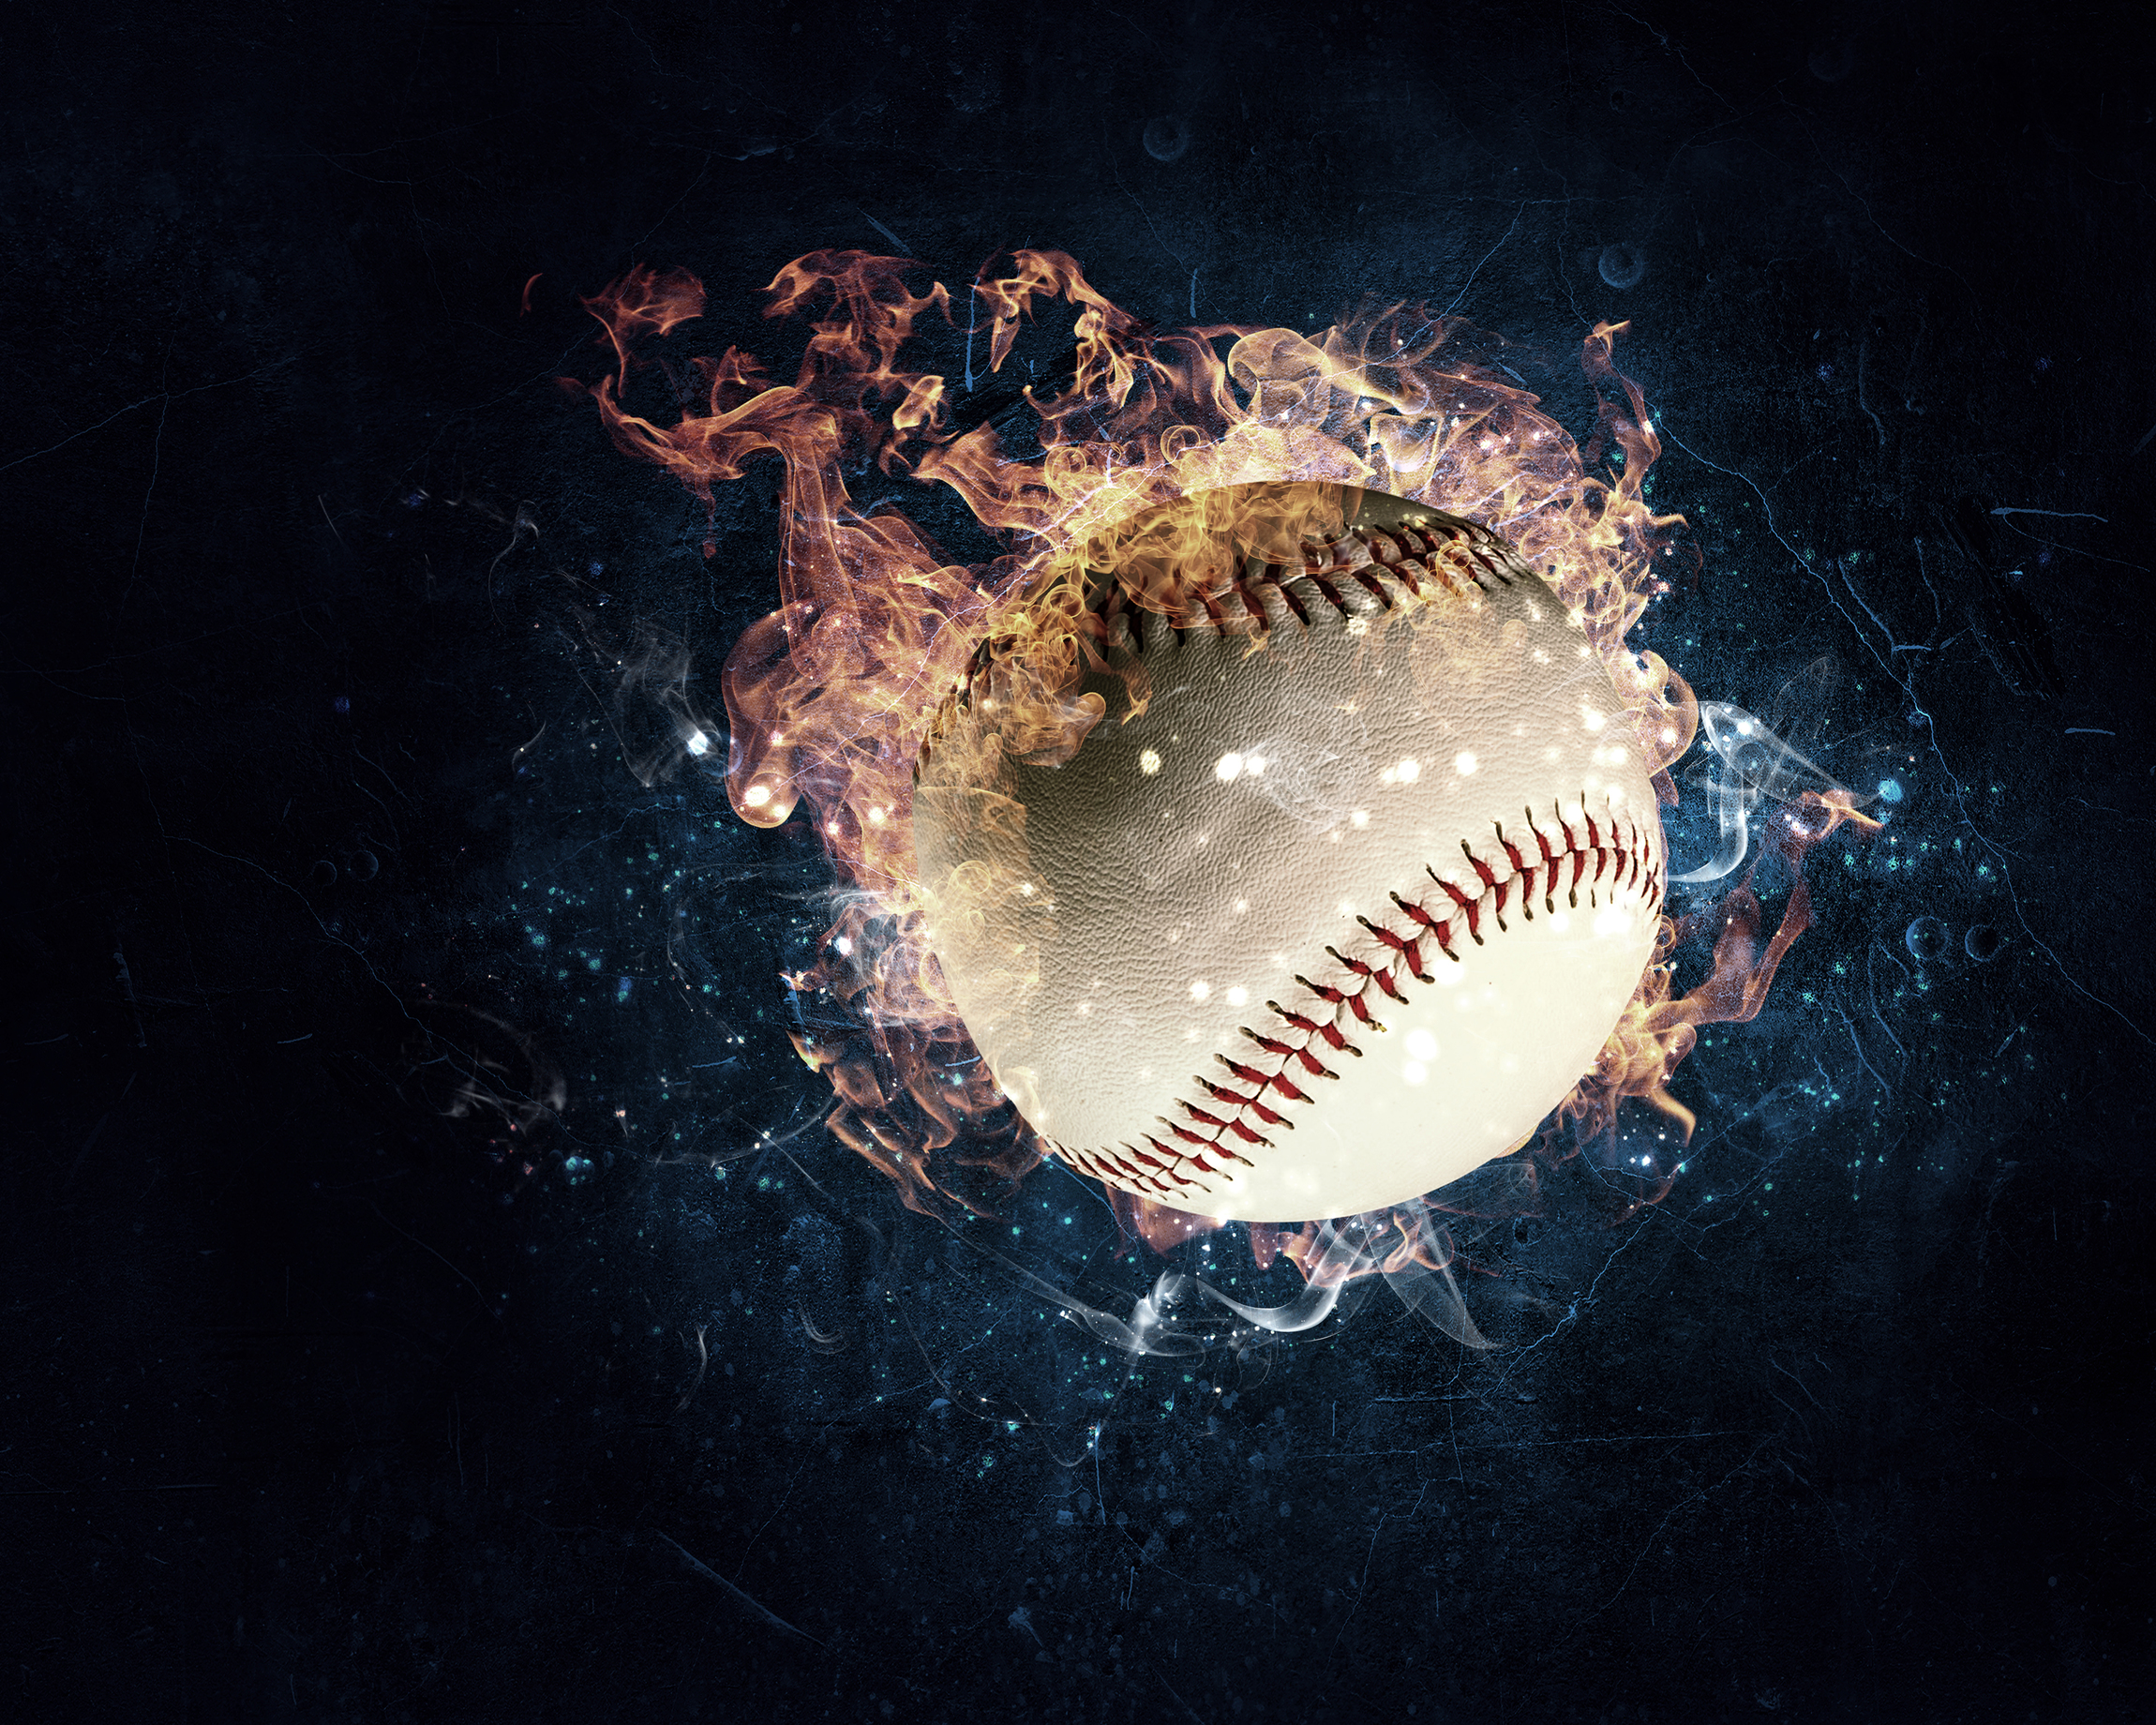 Baseball game concept with ball in fire flames. Mixed media